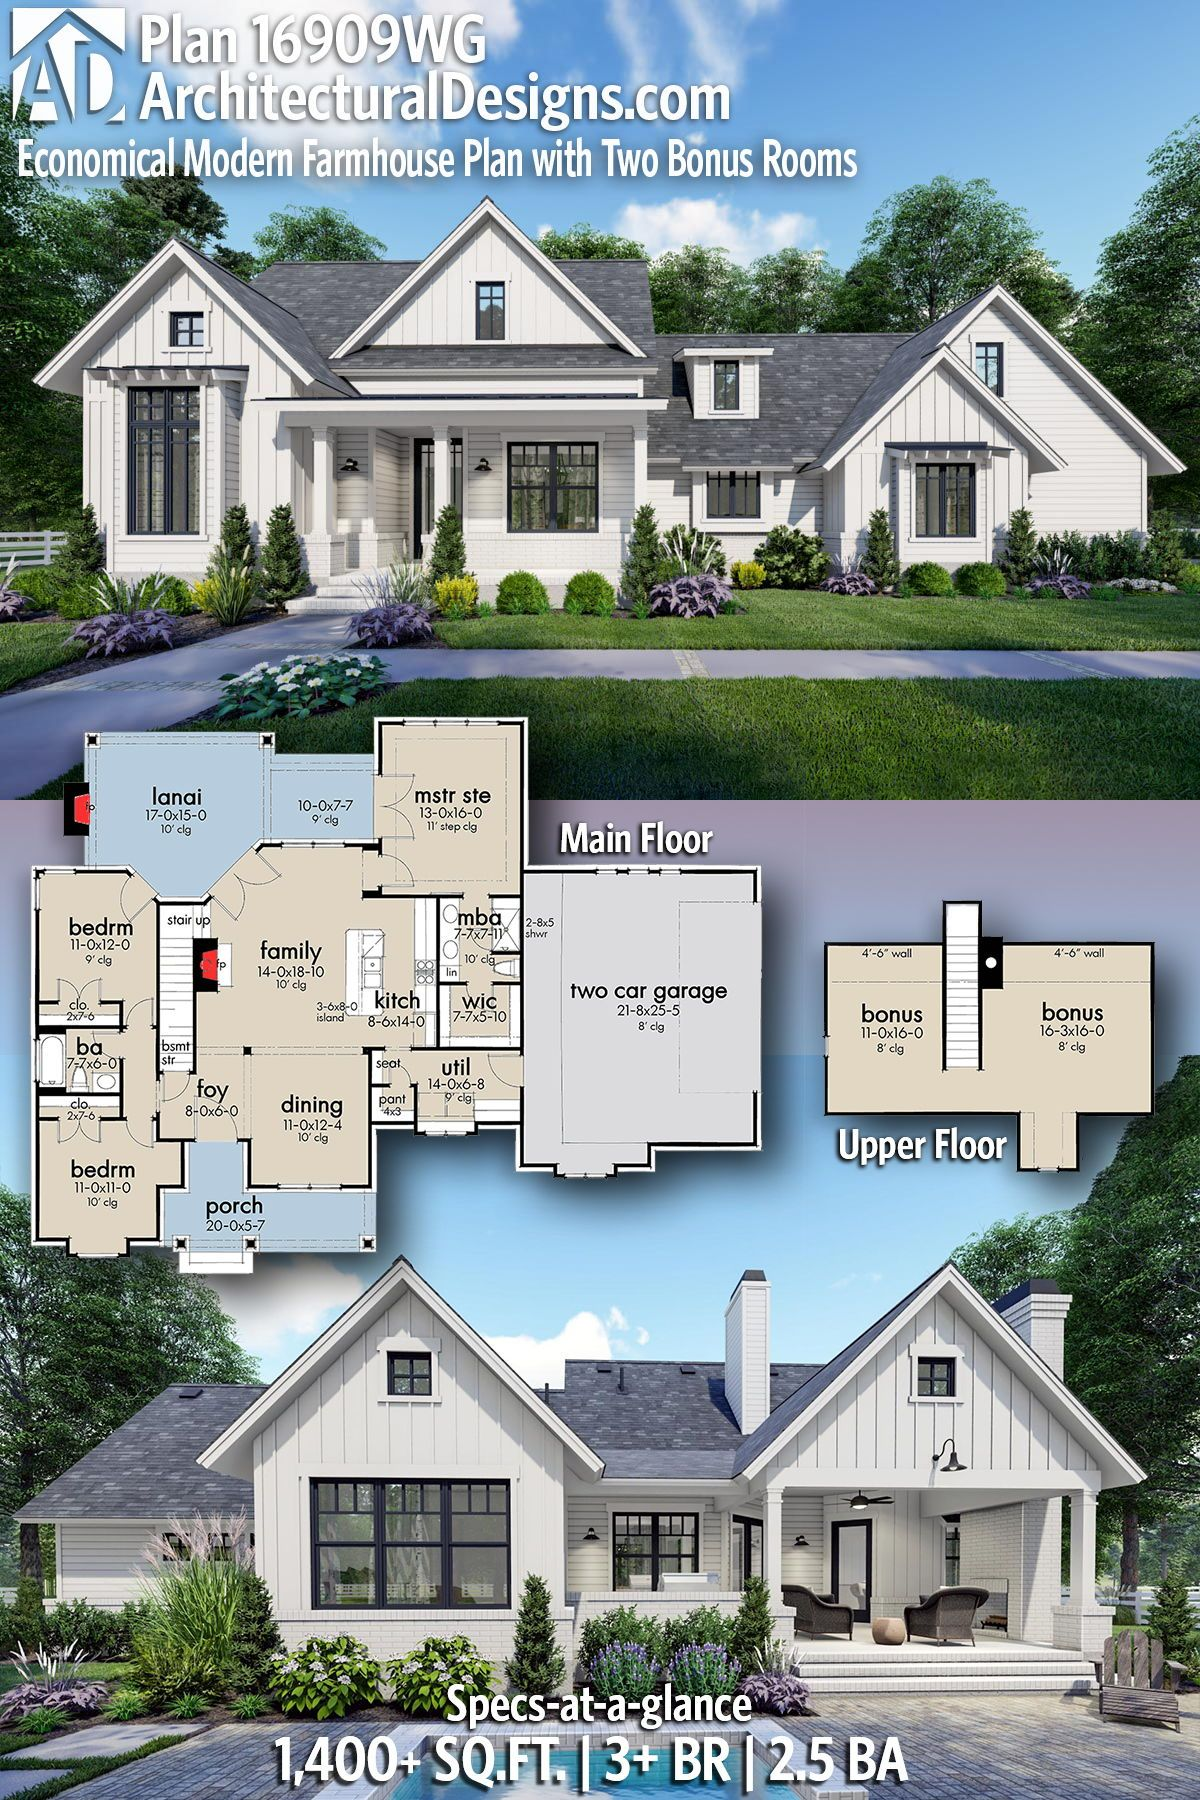 Plan 16909wg Economical Modern Farmhouse Plan With Two Bonus Rooms Modern Farmhouse Plans House Plans Farmhouse Modern House Plans